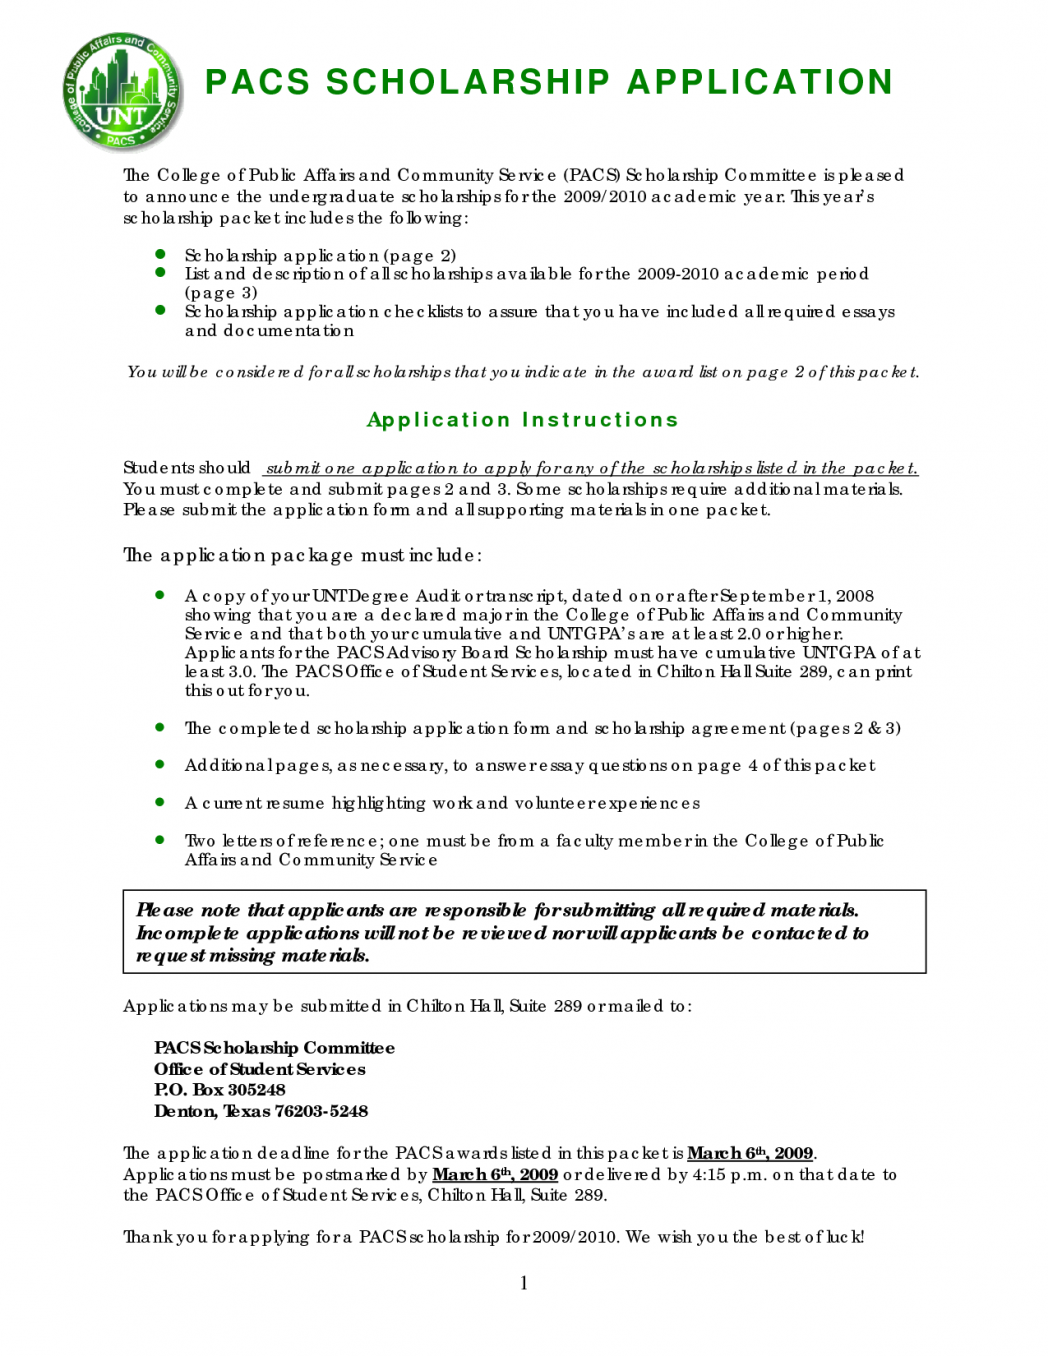 021 Essay Example Samples Of Essays For Scholarships Scholarship Application Sample Pdf 11exu Nursing College Examples Ideas Mba About Yourself 1048x1356 Imposing Non High School Freshman No Students 2019 Full